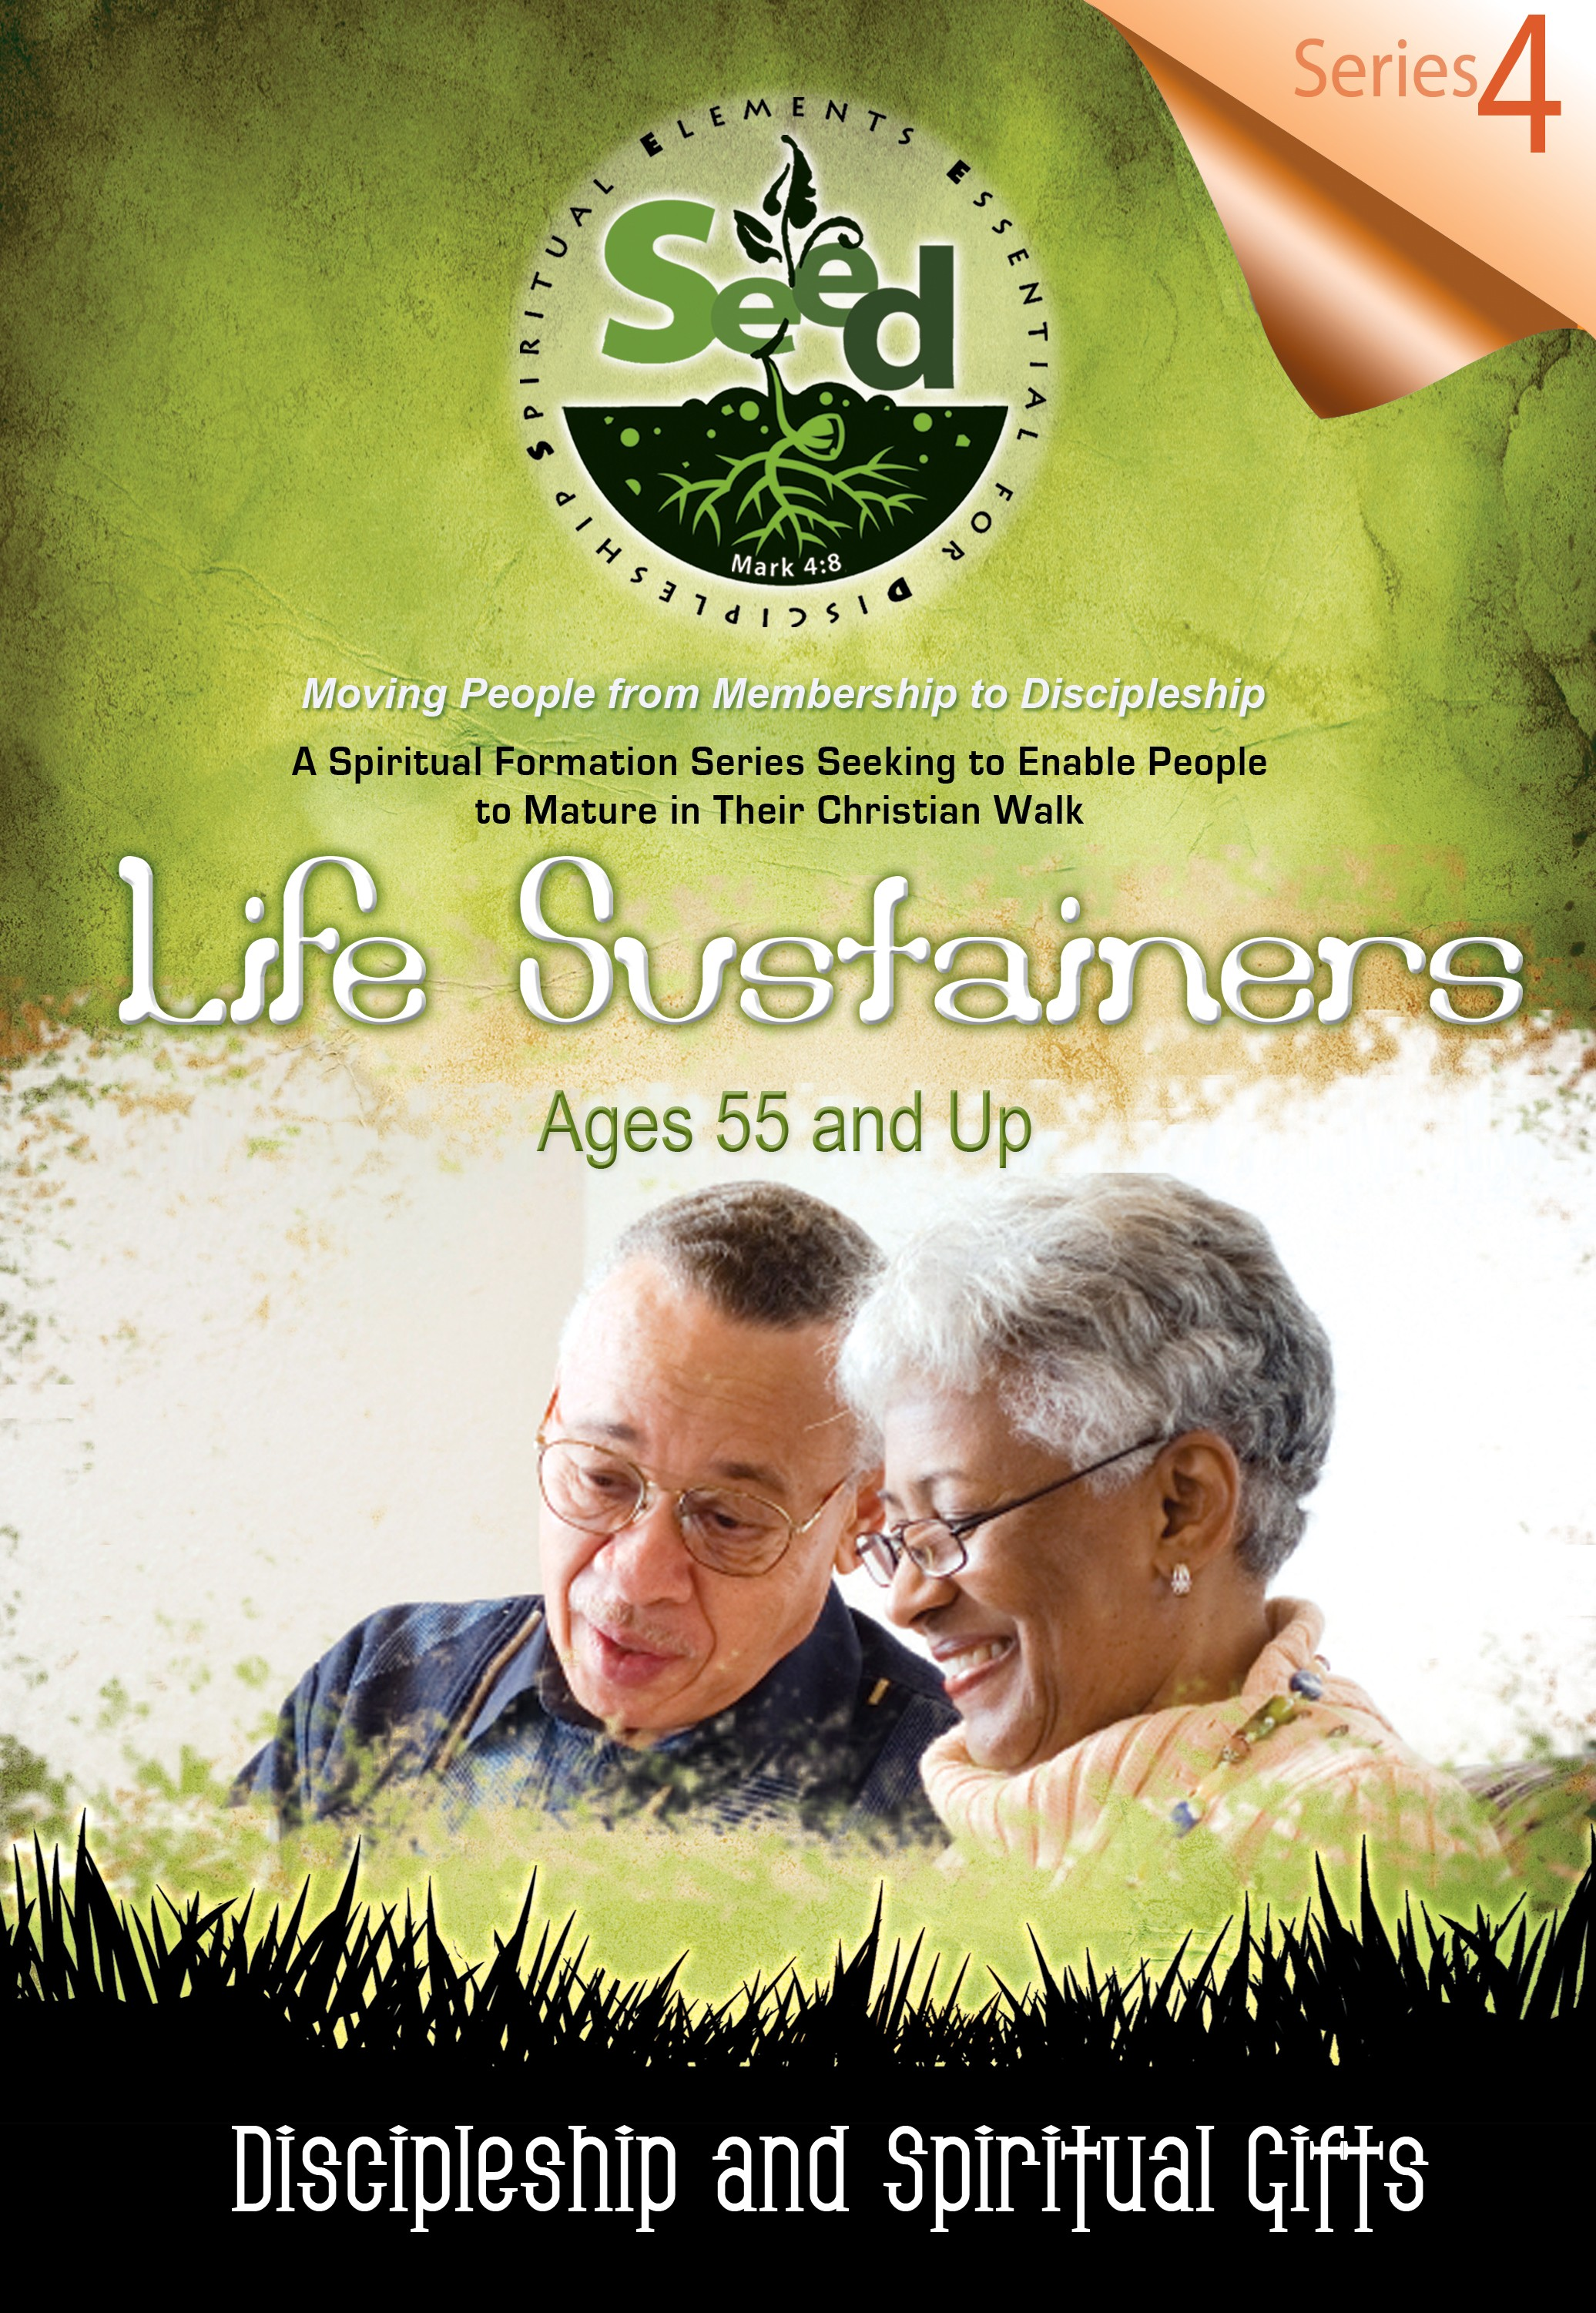 SEED Life Sustainers (Ages 55 and Up): Series 4: Discipleship and Spiritual Gifts